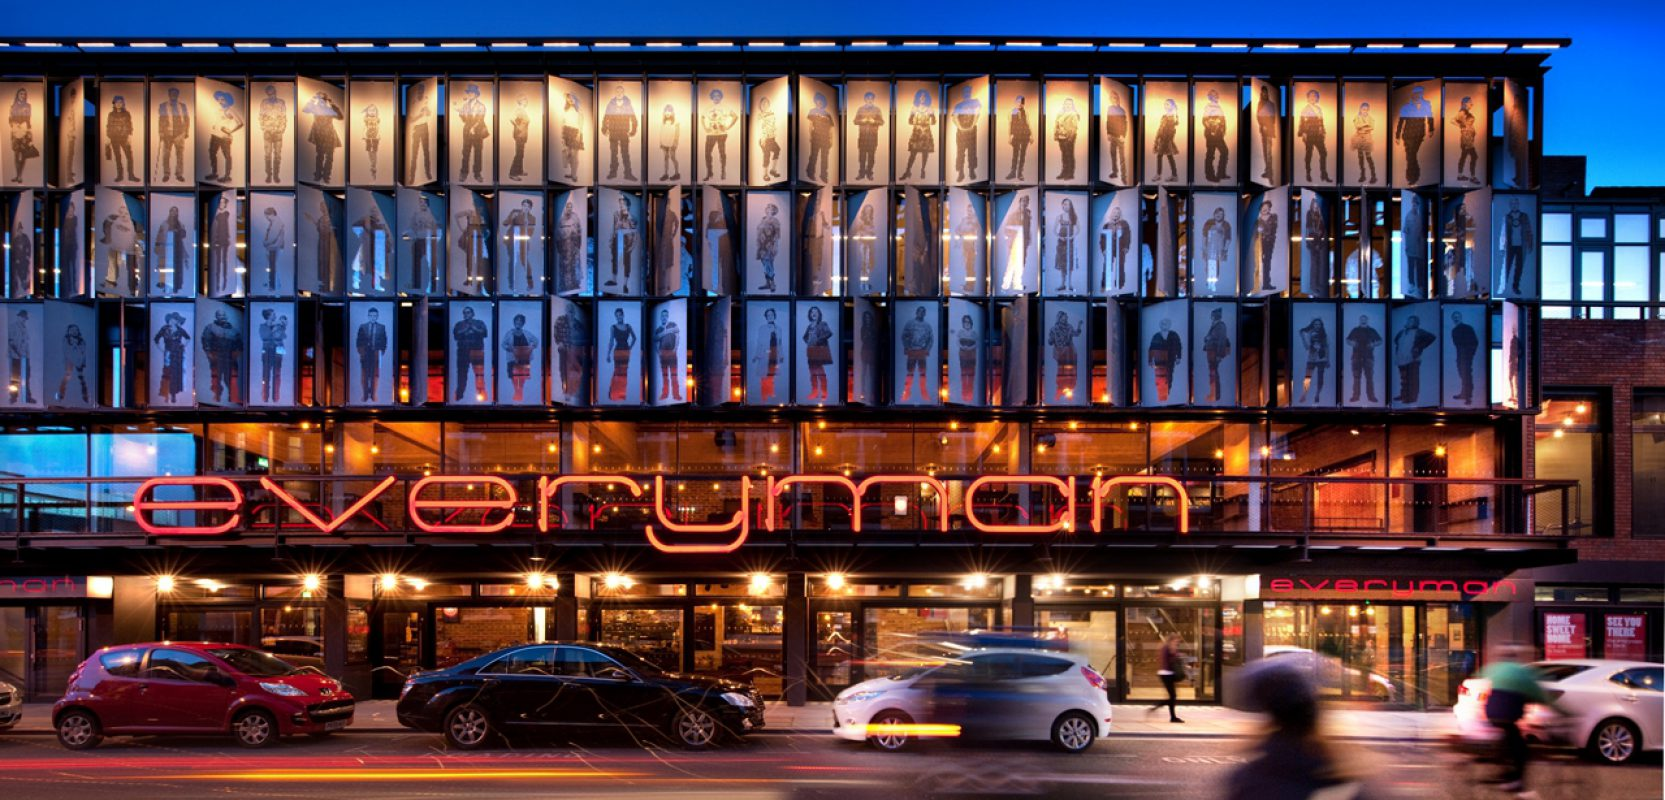 Images of Everyman Theatre project